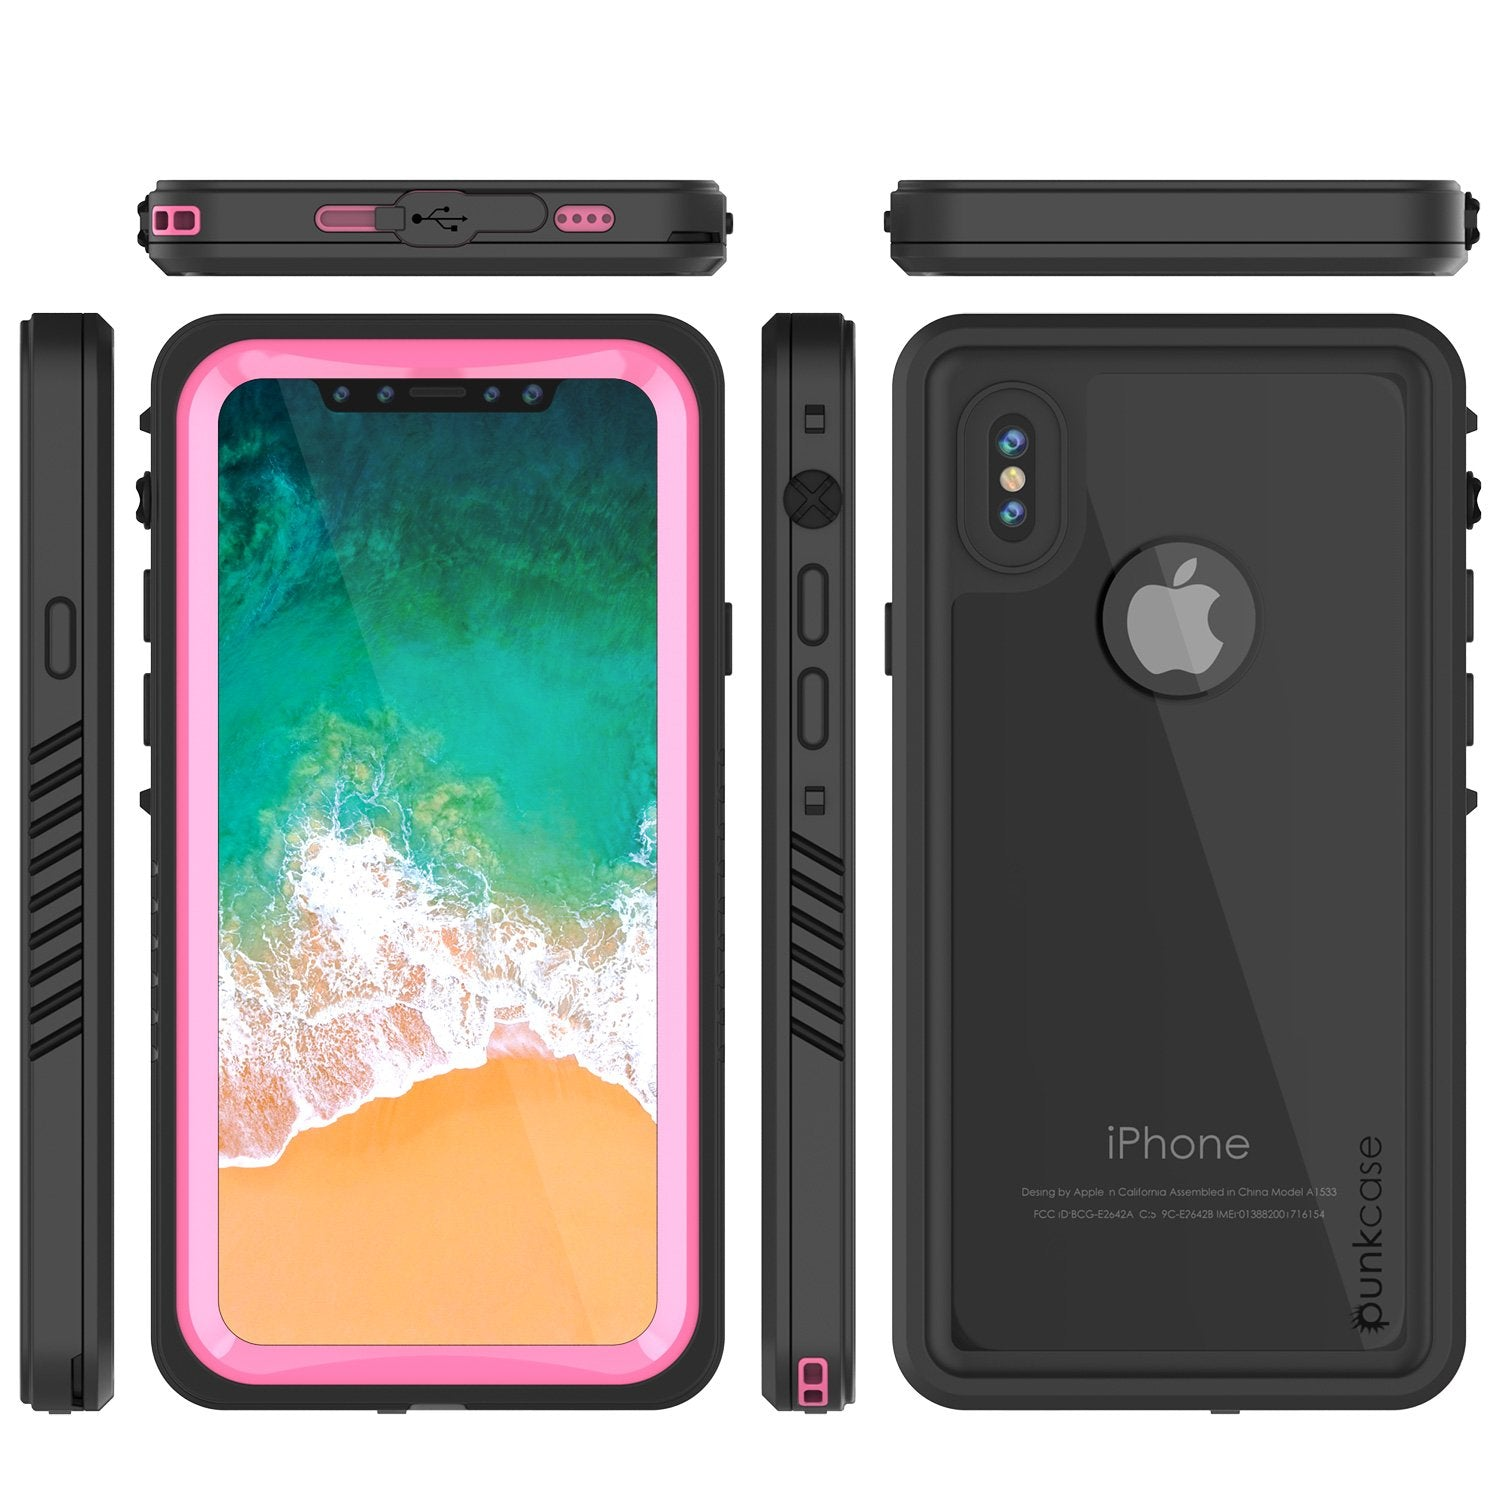 iPhone X Case, Punkcase [Extreme Series] [Slim Fit] [IP68 Certified] [Shockproof] [Snowproof] [Dirproof] Armor Cover W/ Built In Screen Protector for Apple iPhone 10 [PINK]